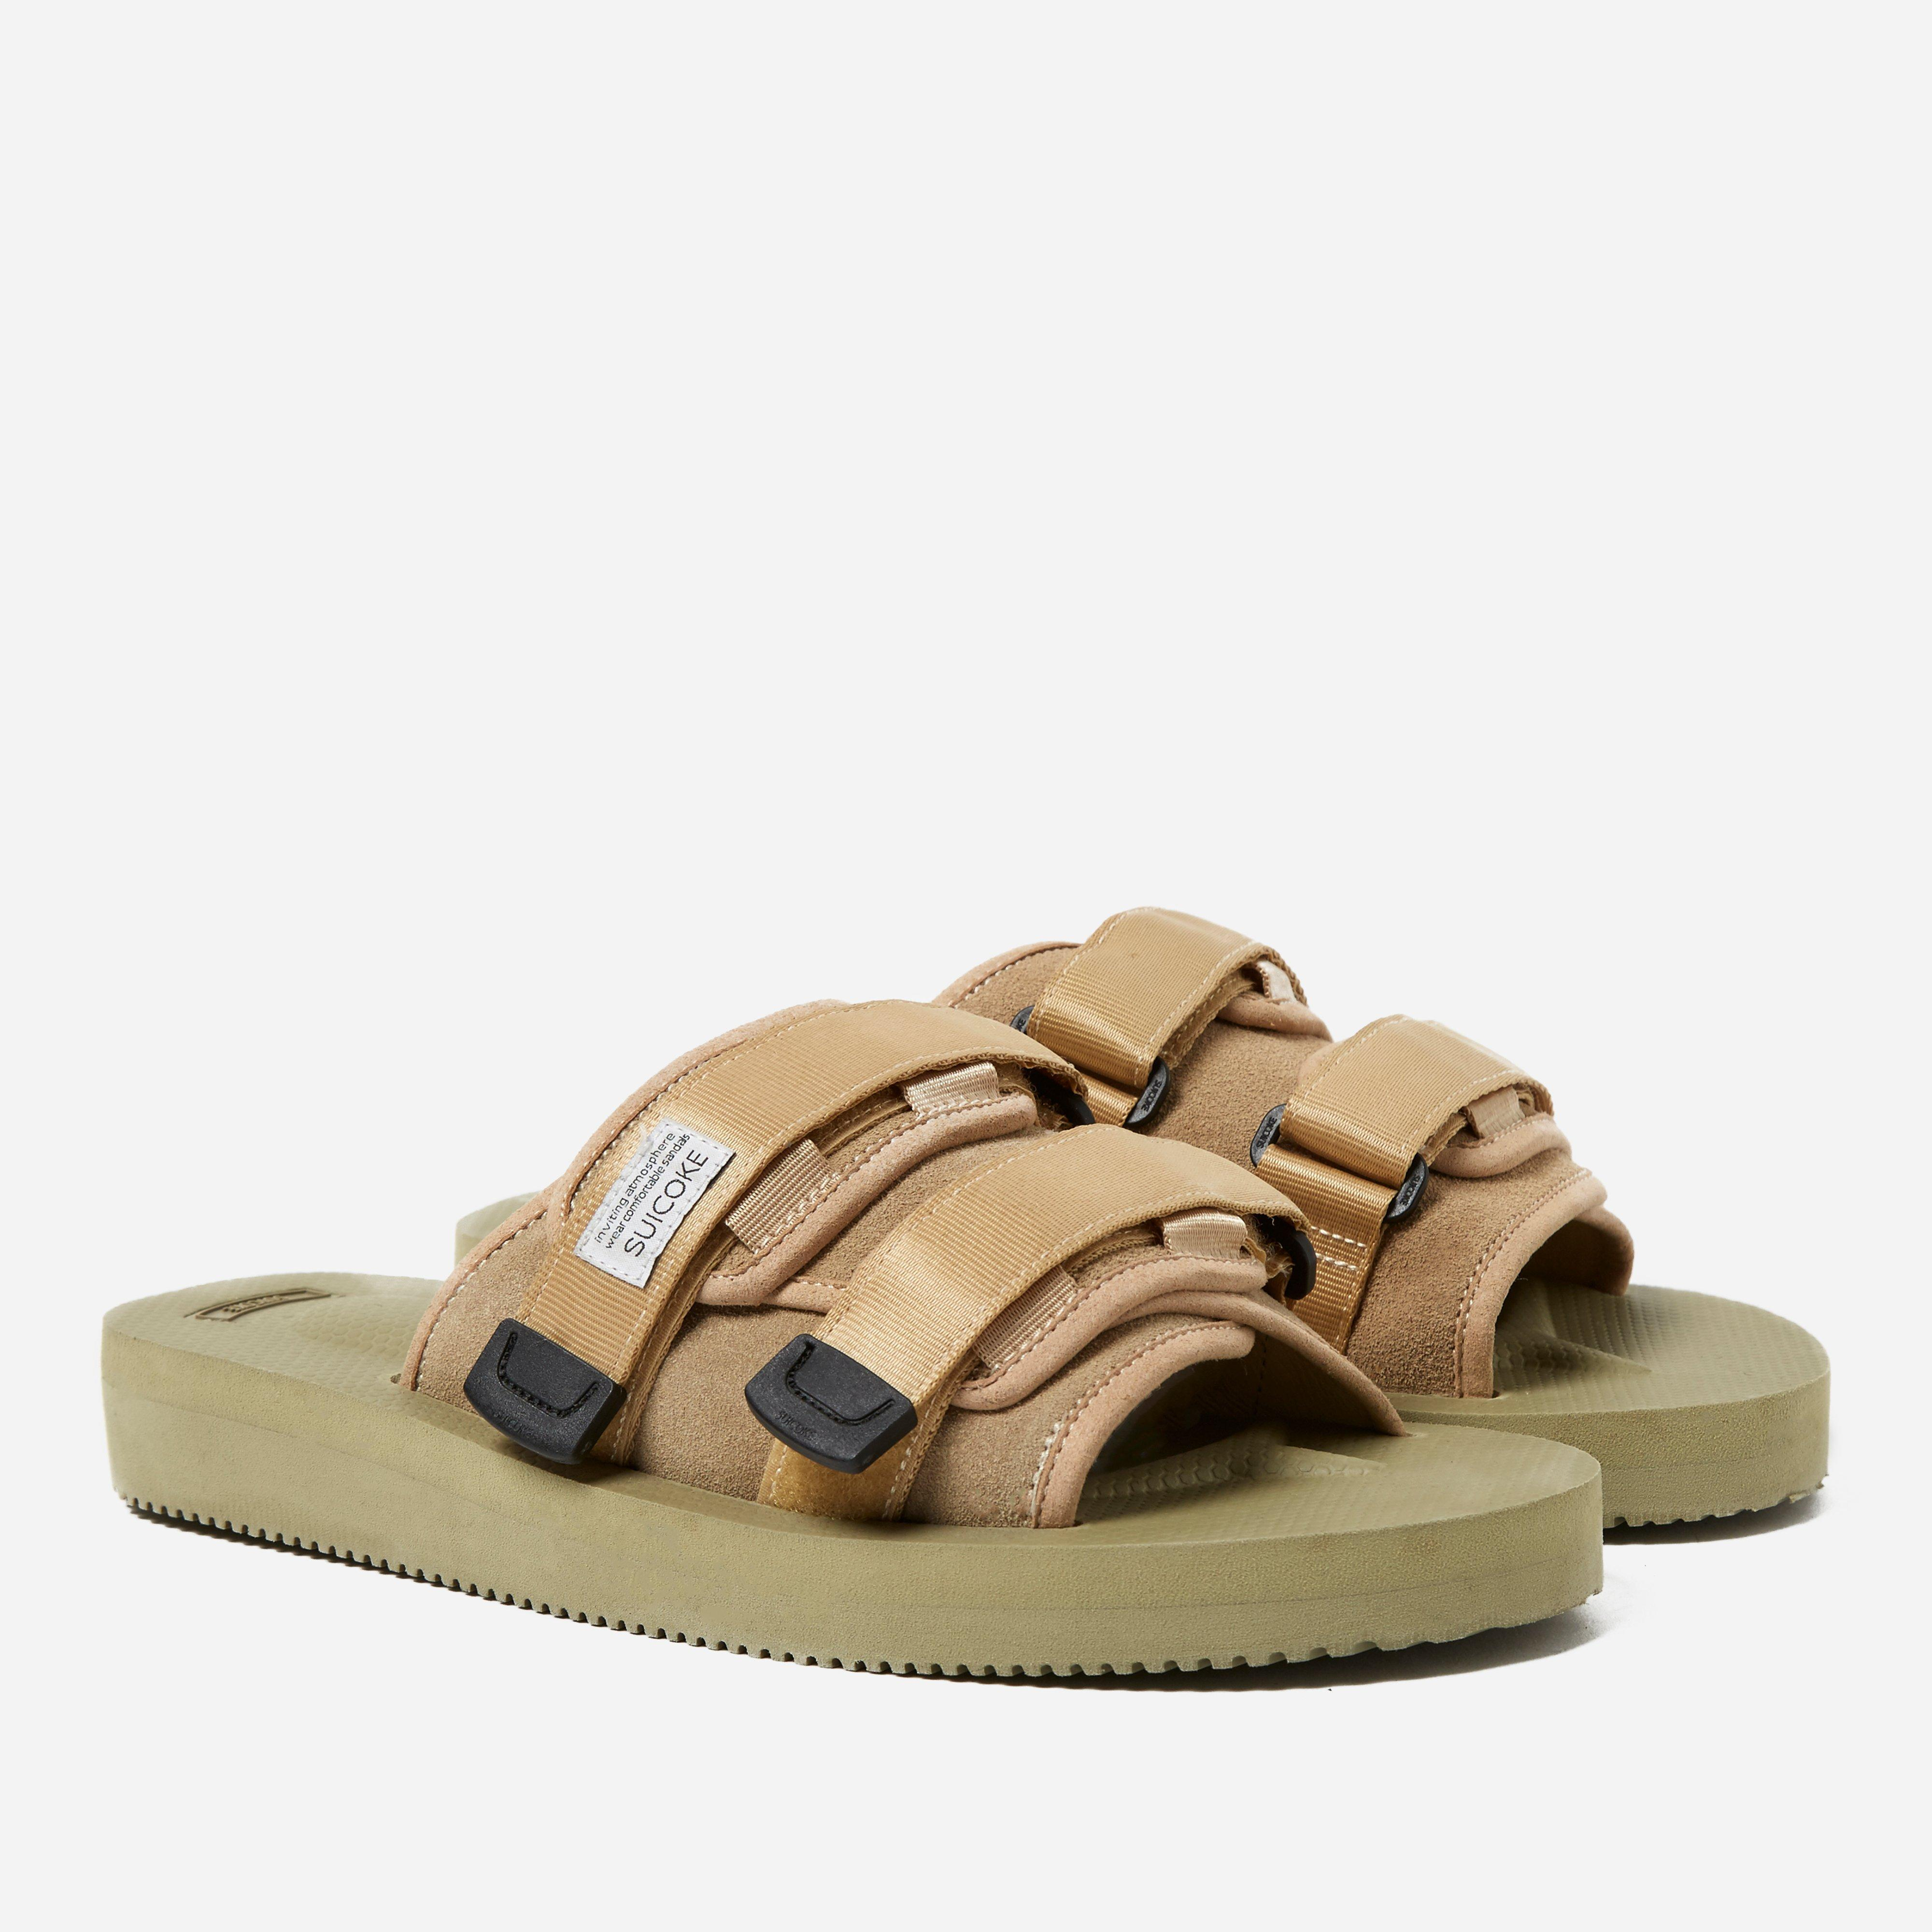 f97839f8600 Lyst - Suicoke Moto - Vs in Natural for Men